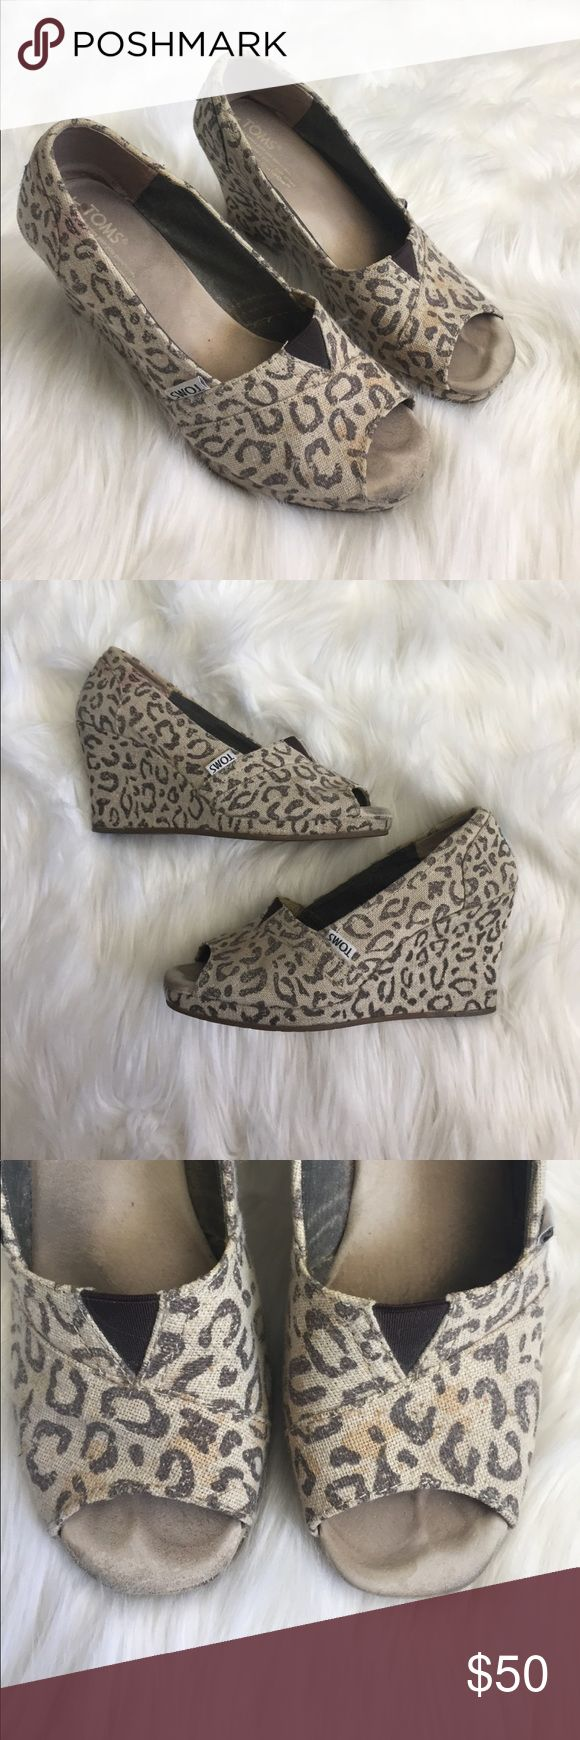 Leopard toms wedges Leopard toms wedges some stains shown in photos TOMS Shoes Wedges